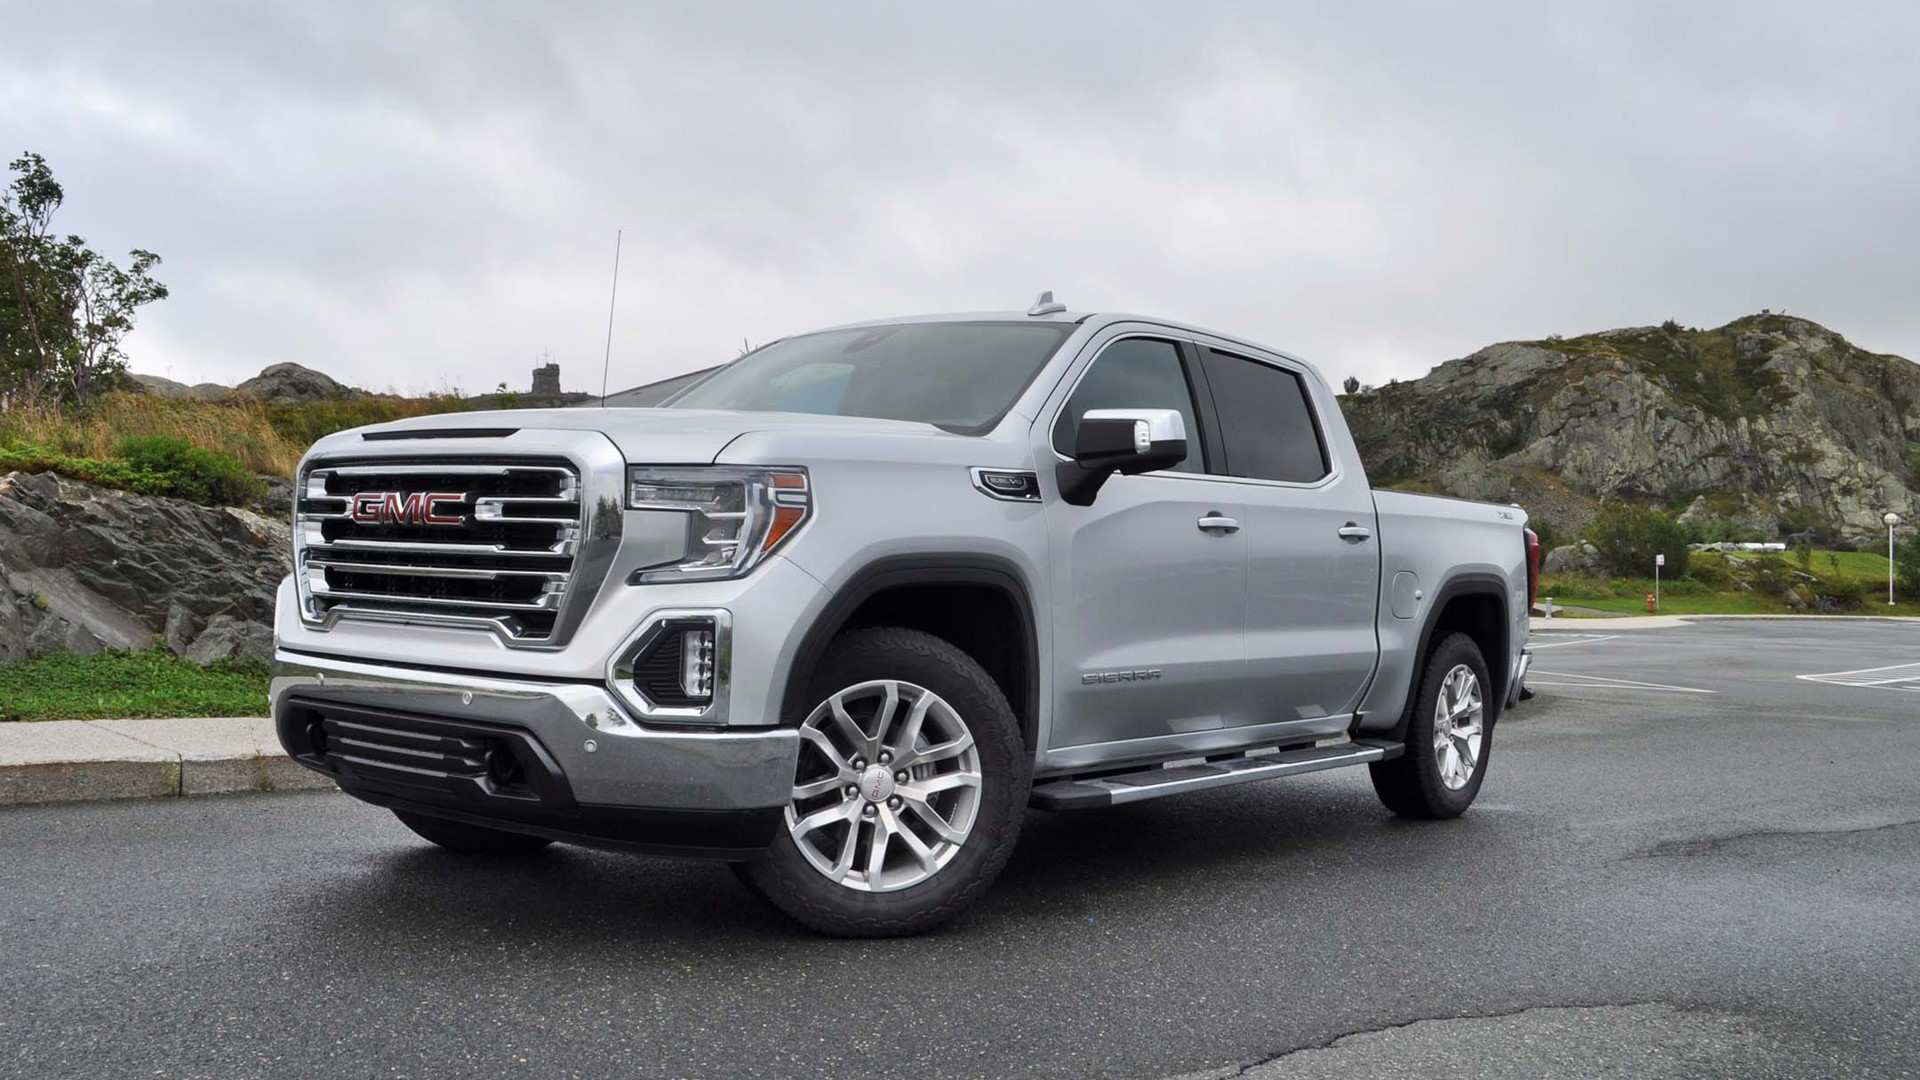 92 Best Review New Gmc Sierra 2019 Weight Redesign And Price Redesign for New Gmc Sierra 2019 Weight Redesign And Price